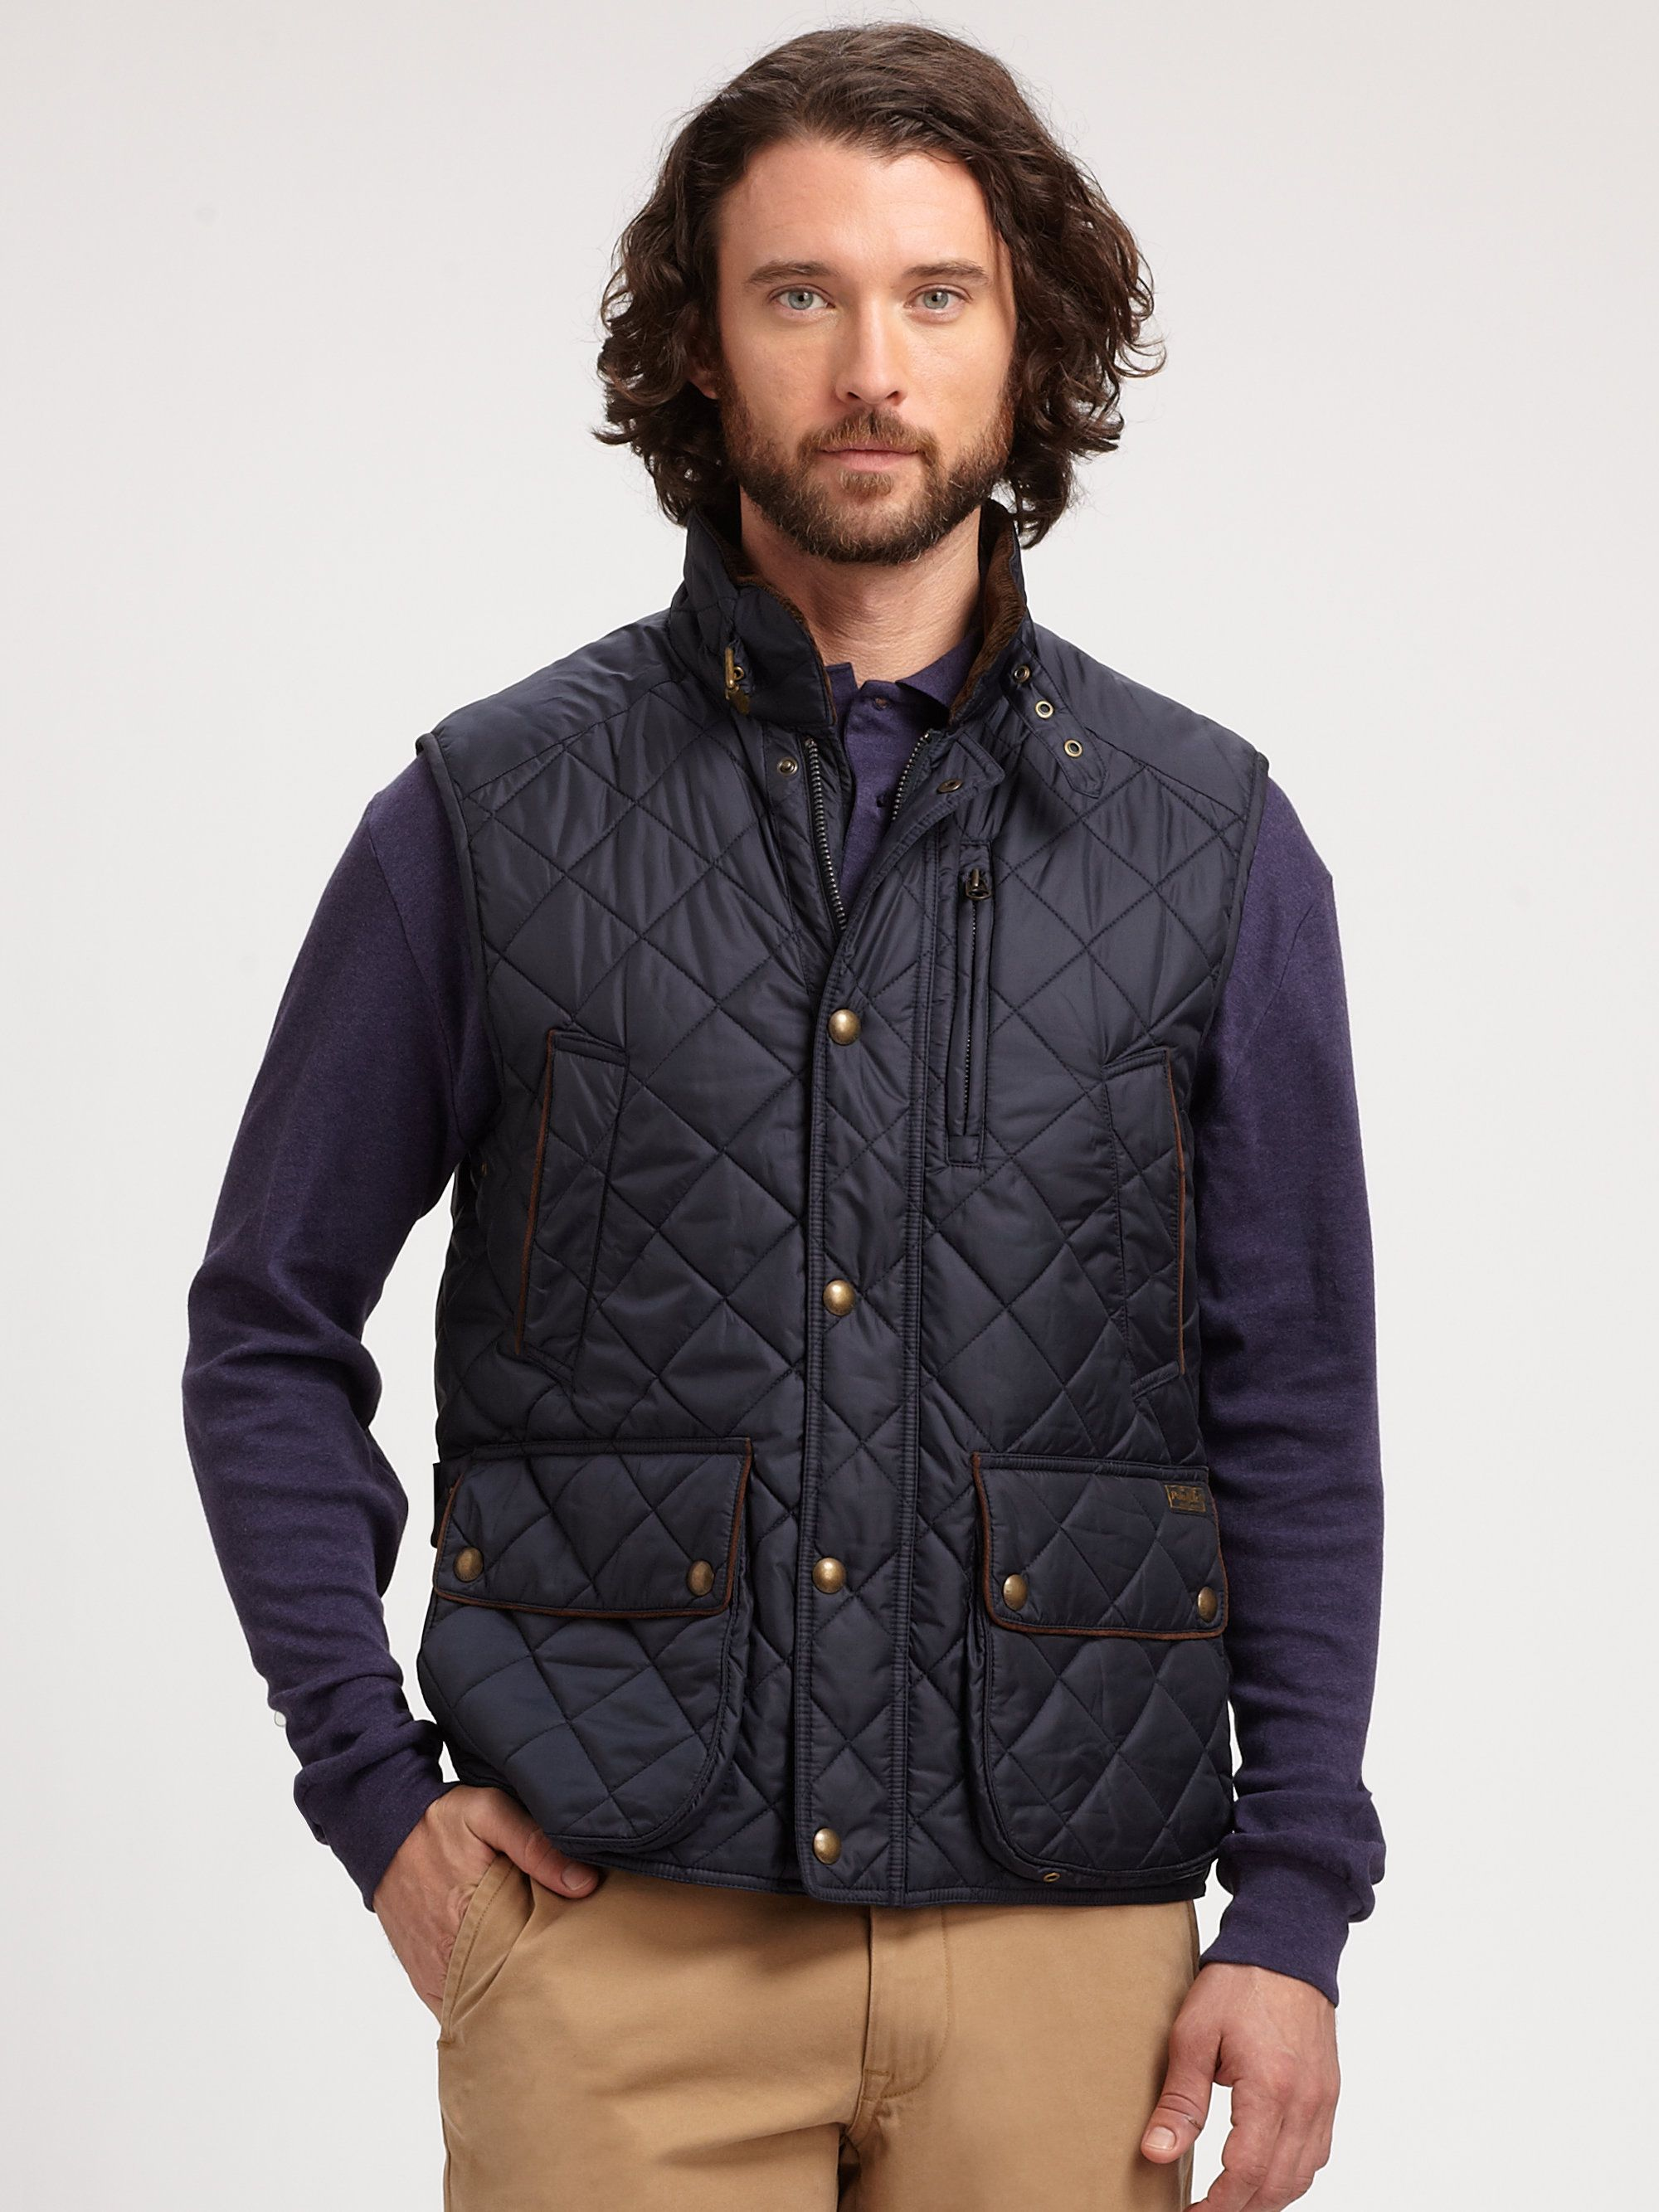 quilted flash mens board jacket lyst the product navy normal baseball men for ralph blue lauren in barbour quilt coastal